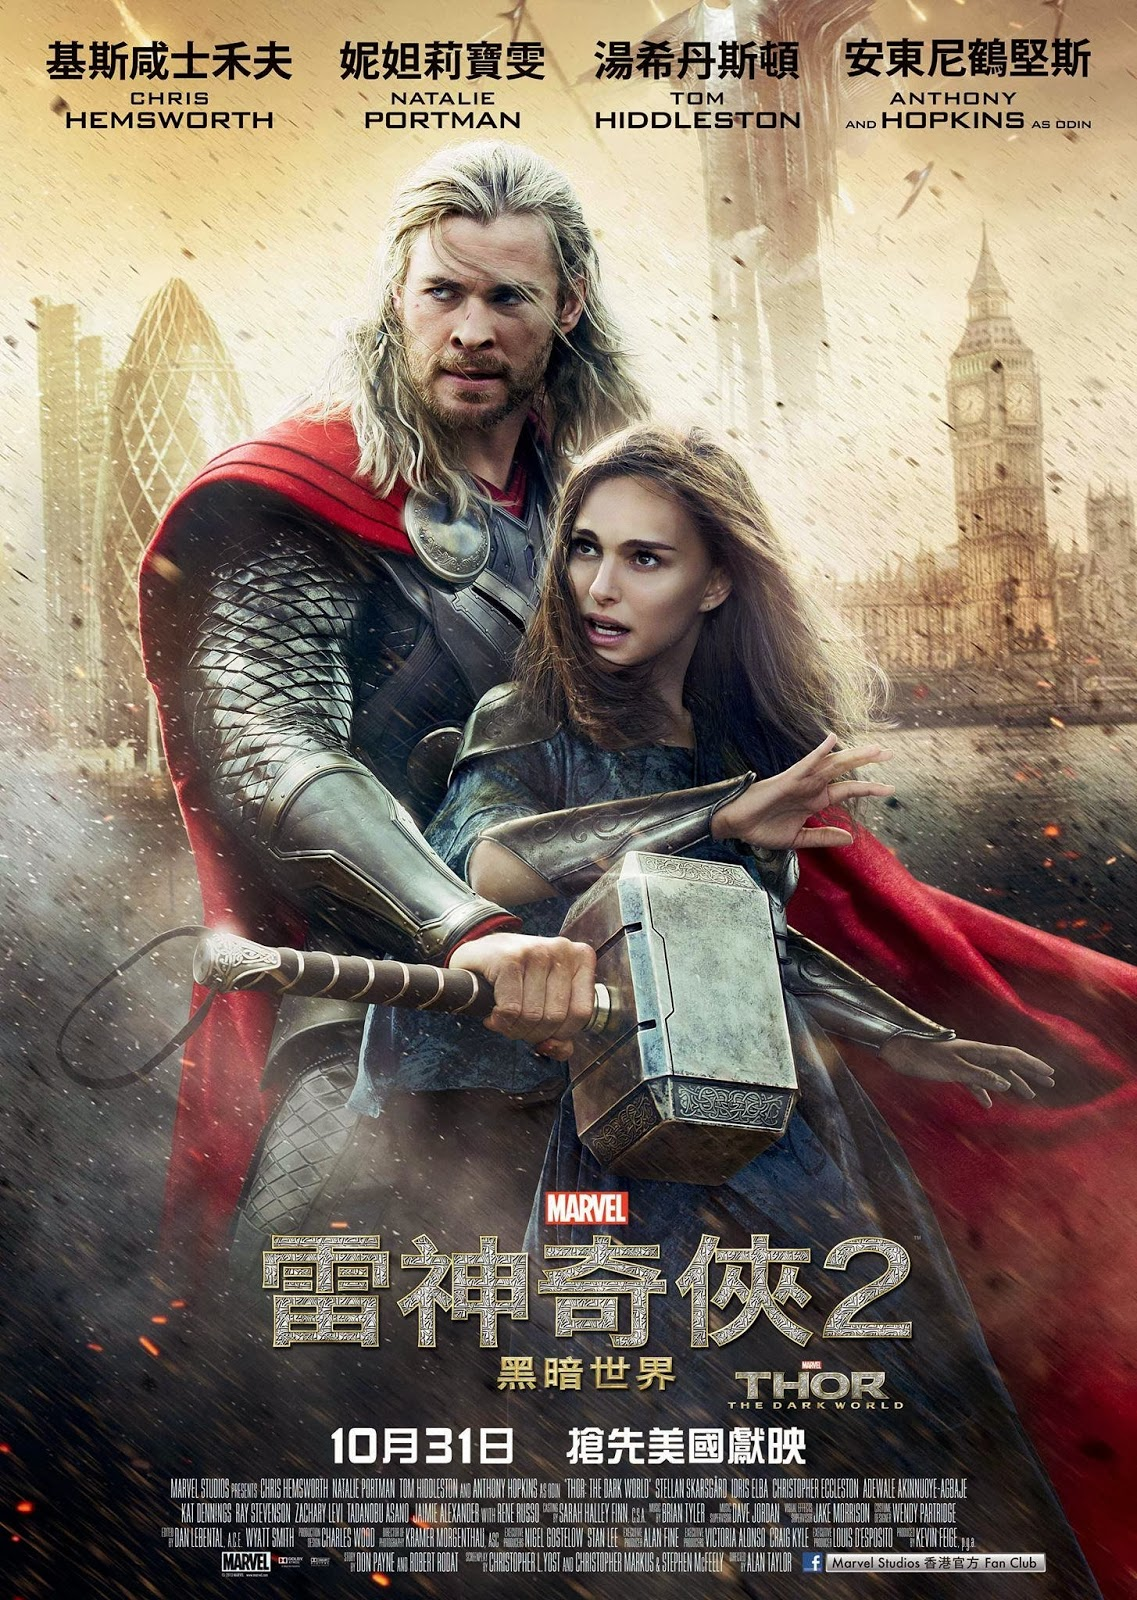 thor 2 the dark world – thor, his girlfriend, and two of his